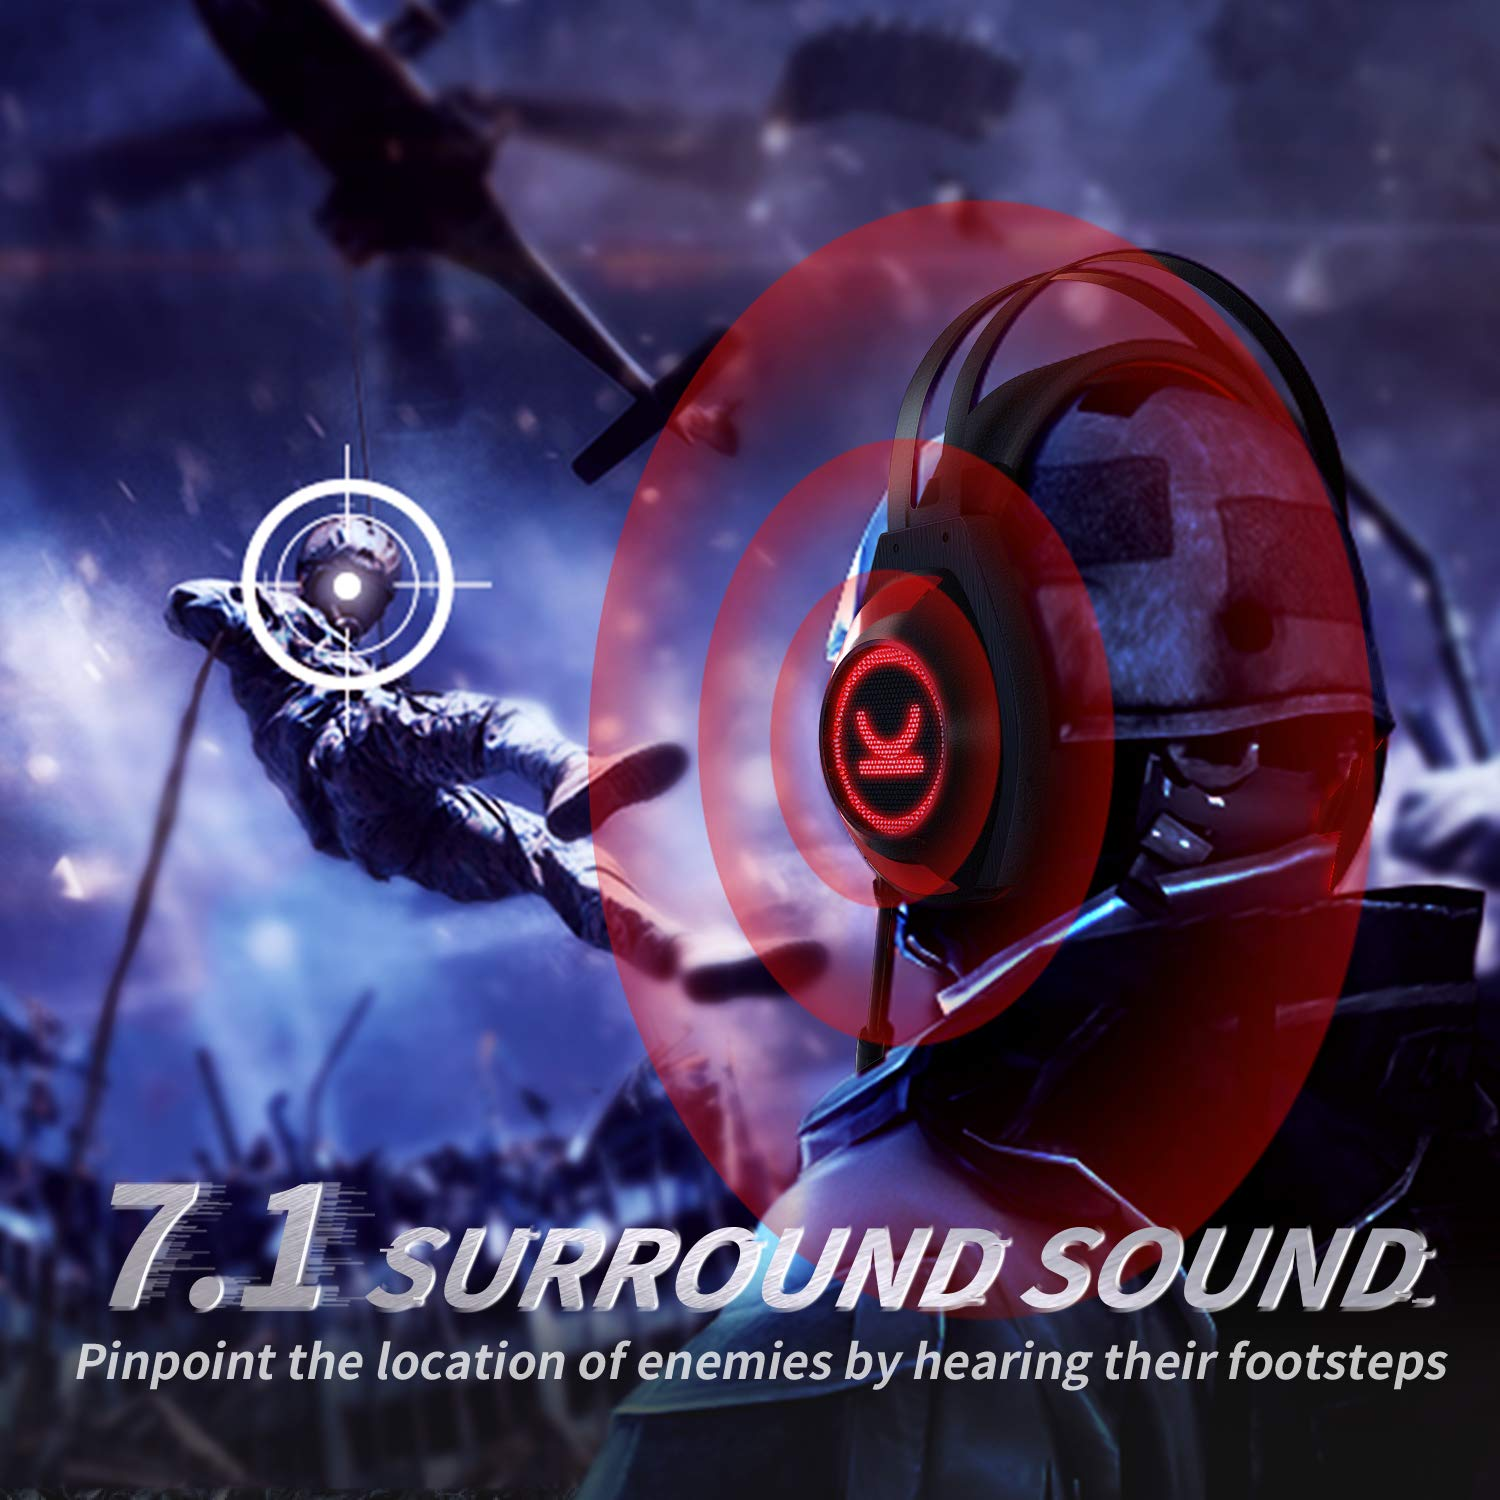 VANKYO Gaming Headset CM7000 Pro PS4 Headset with 7.1 Surround Sound Stereo Xbox One Headset, Gaming Headphones with Noise Canceling Mic Memory Foam Ear Pads for PC, PS4, Xbox One, Nintendo Switch